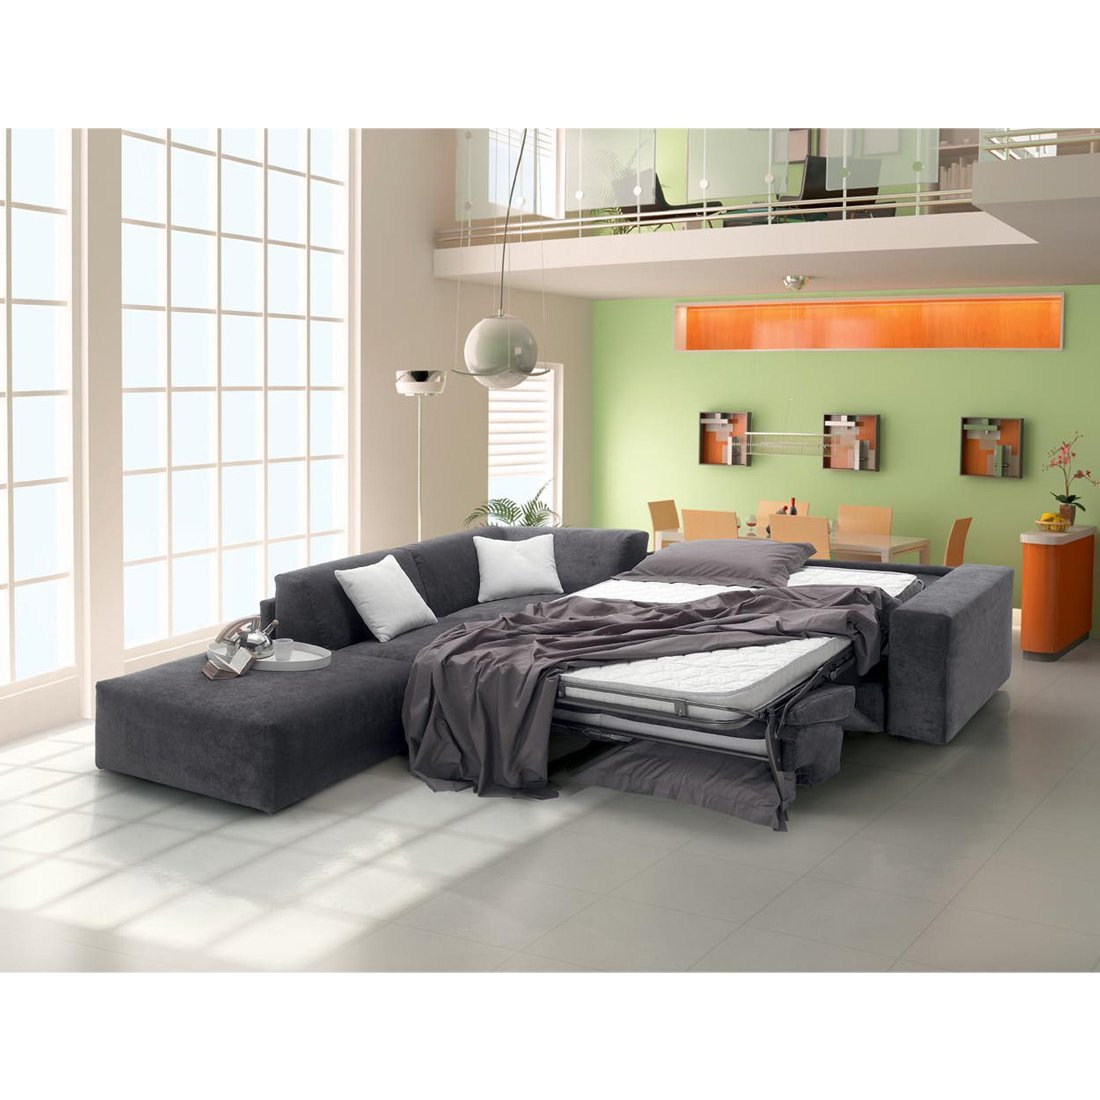 Canap d 39 angle convertible gris meubles et atmosph re Canape d angle but